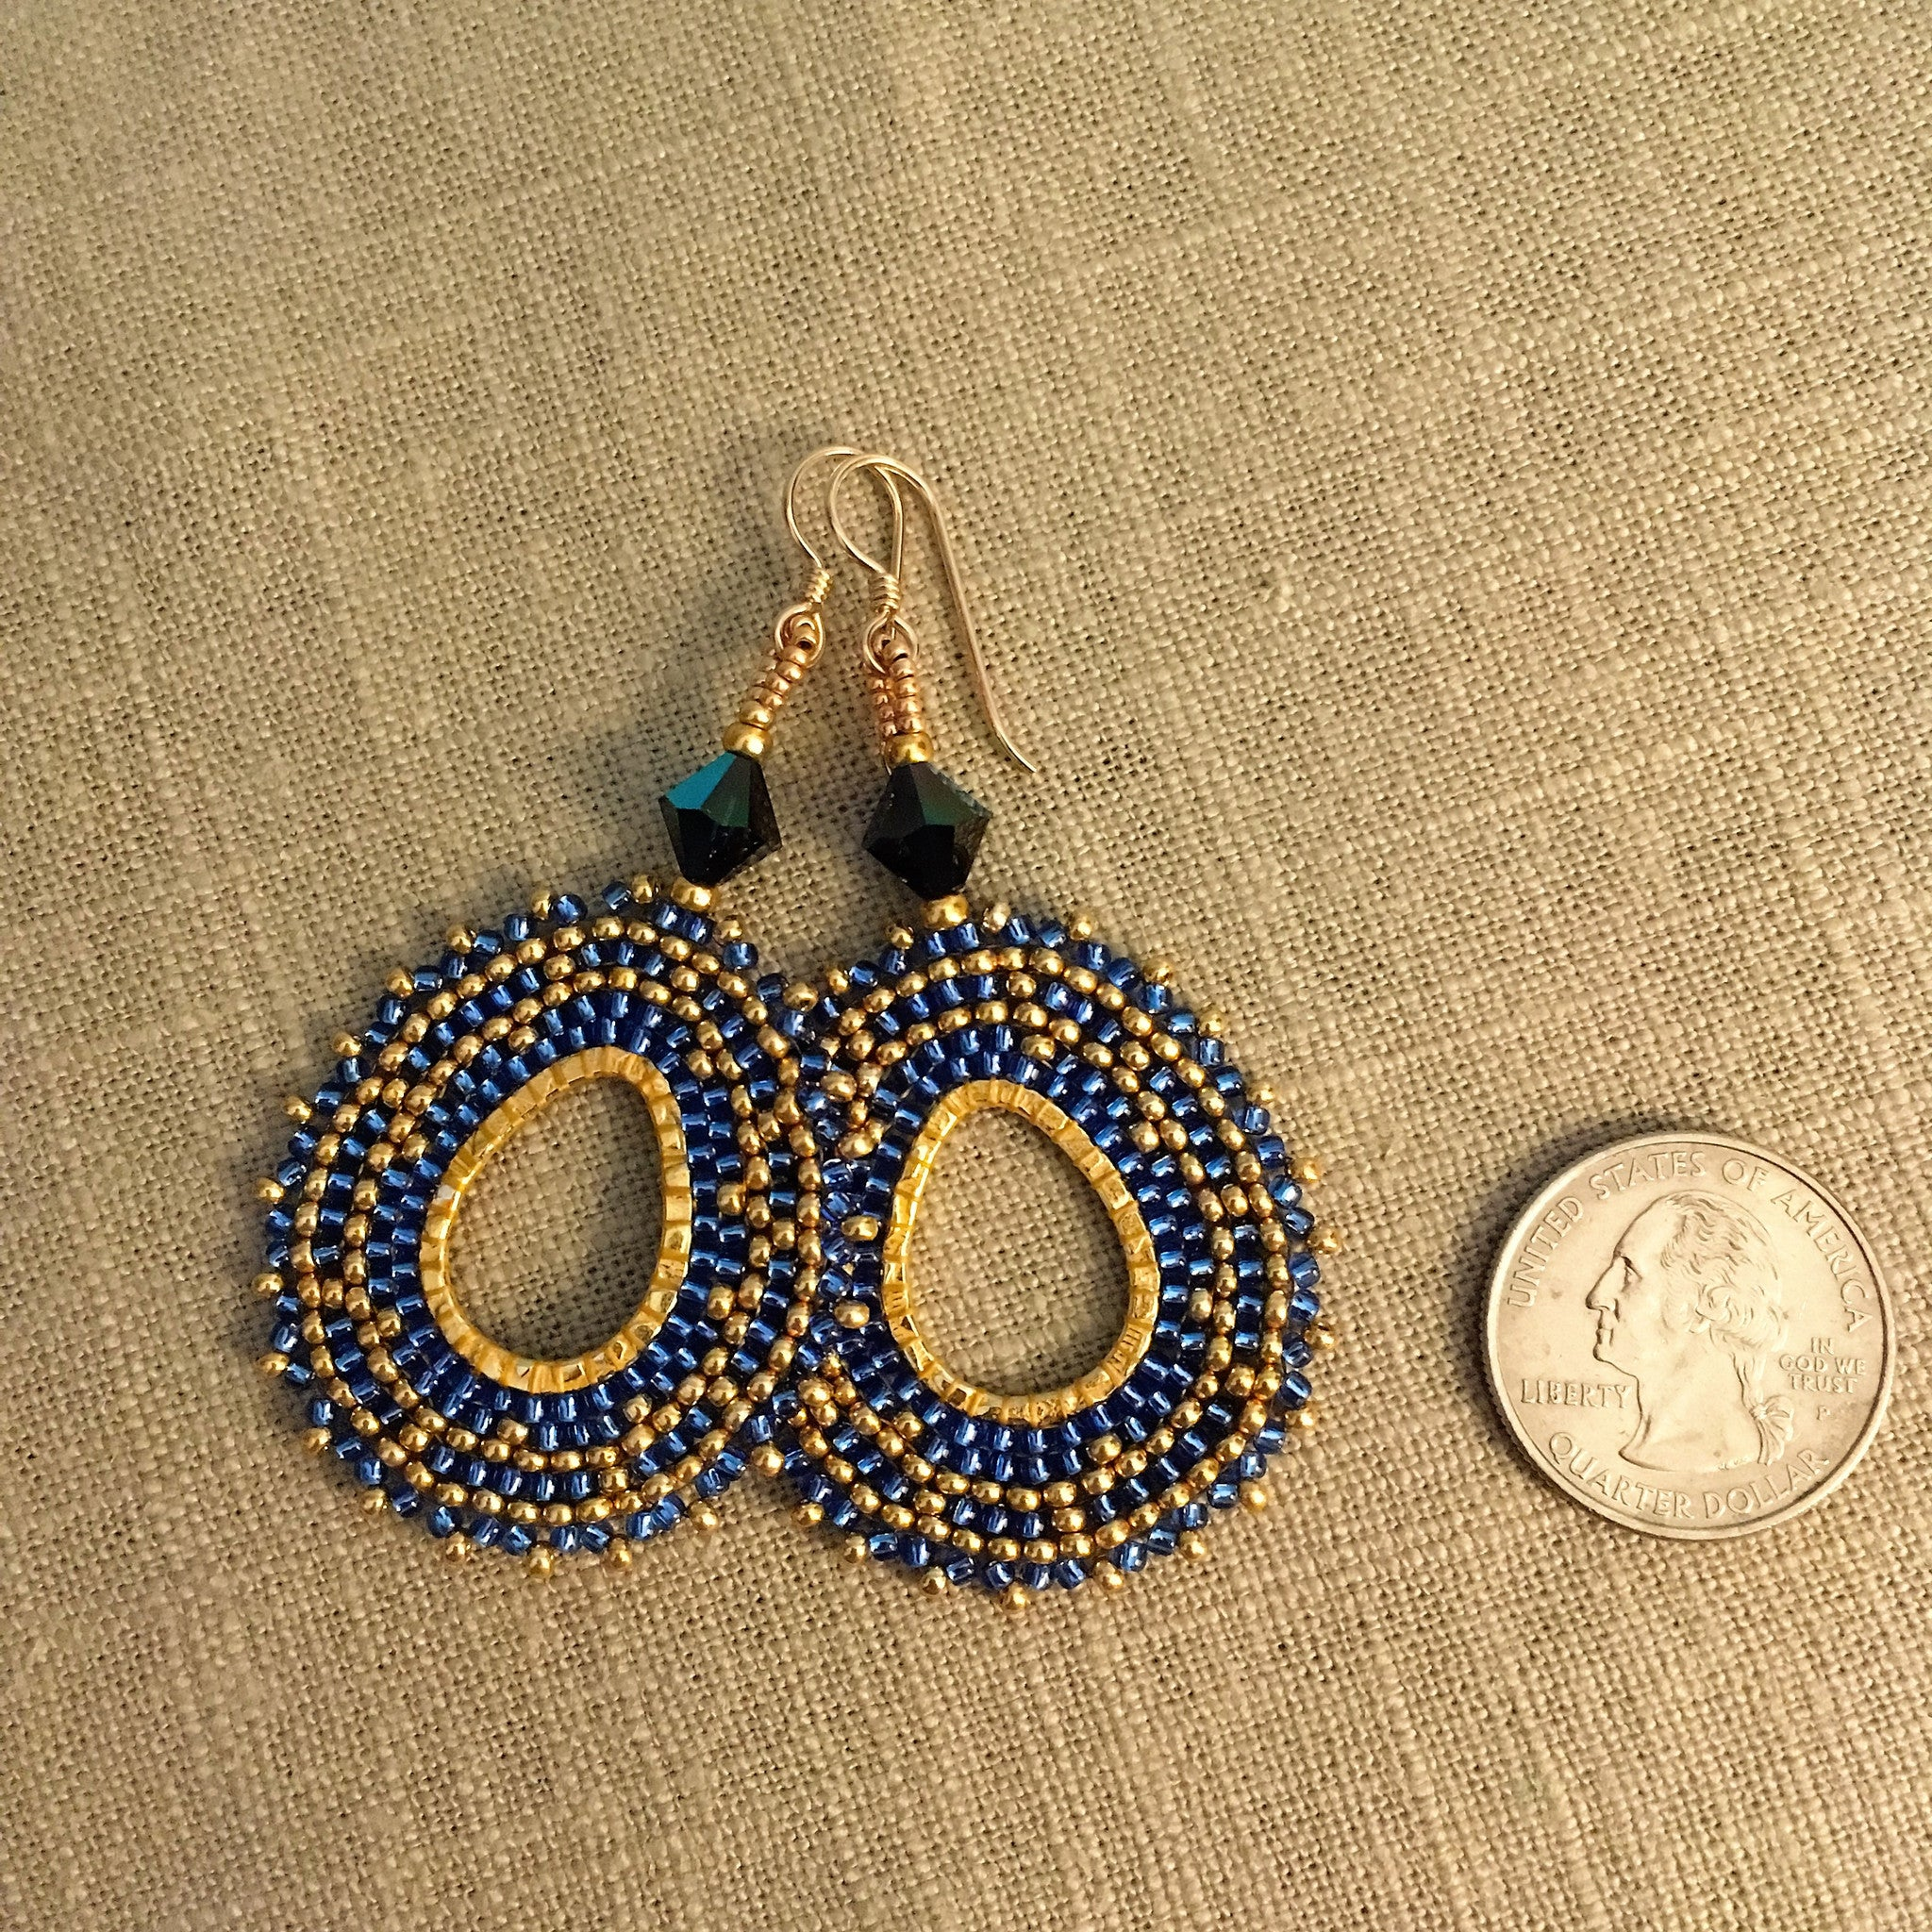 Blue and Gold Oval Hoop Earrings with Swarovski™ Crystals